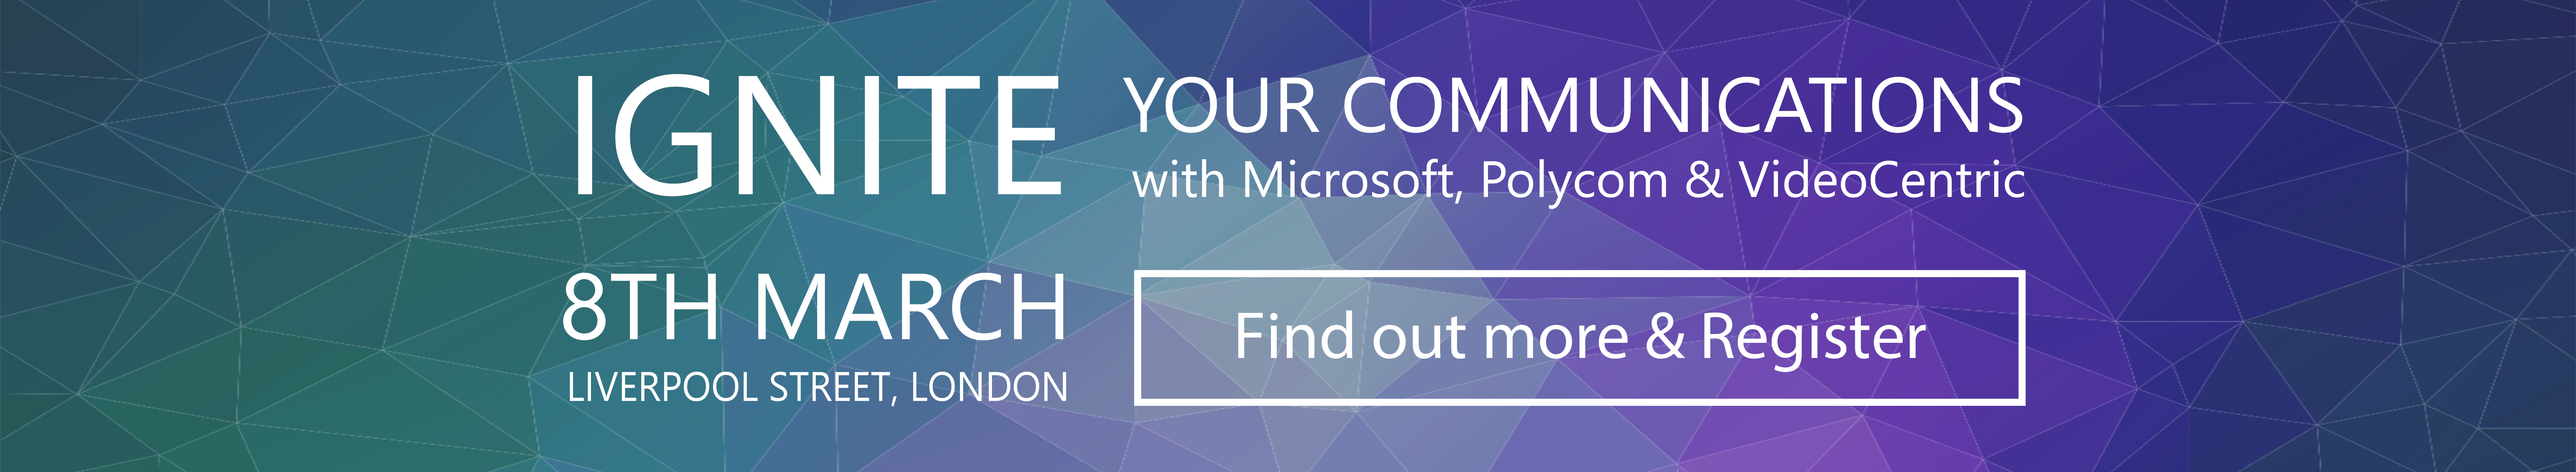 Ignite Your Communications Microsoft, Polycom and VideoCentric Integration Day